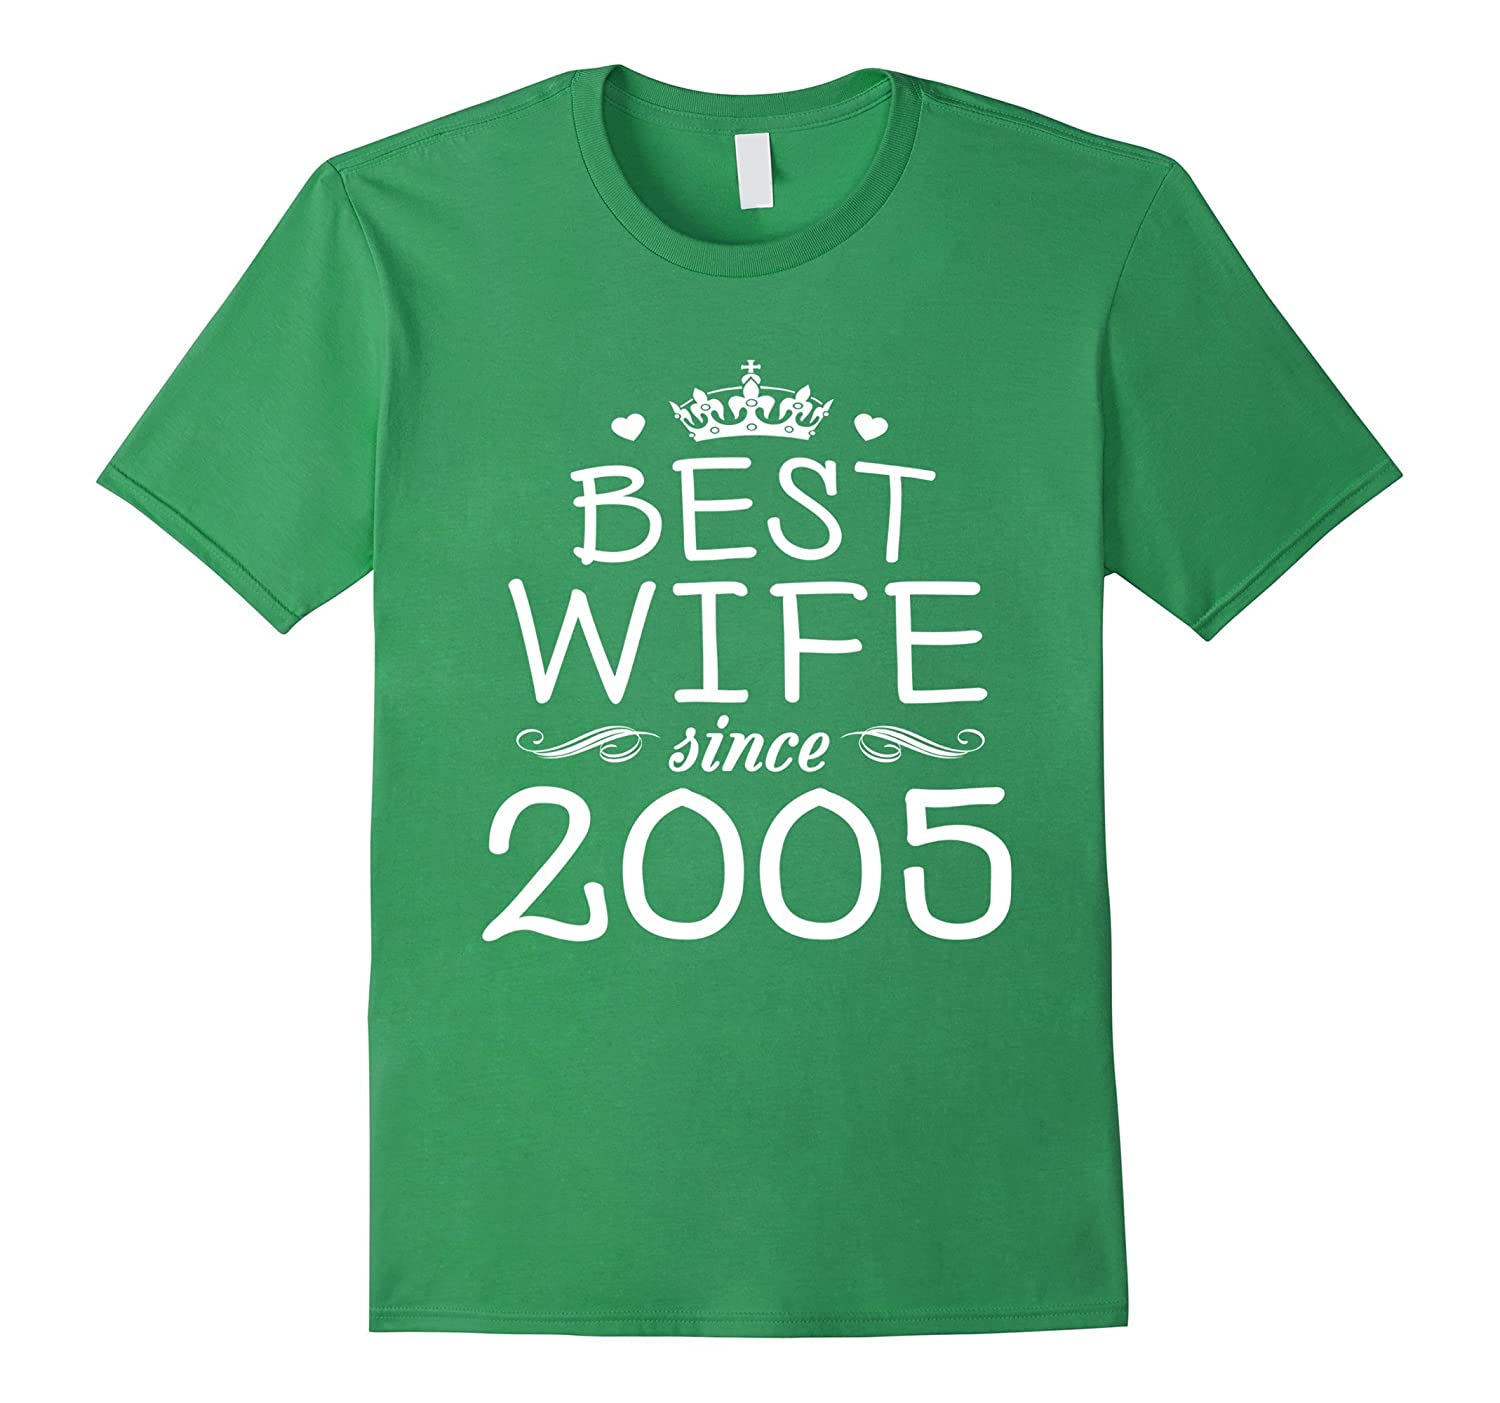 12 Year Wedding Anniversary Gifts: 12th Wedding Anniversary Gift Ideas For Her-Wife Since